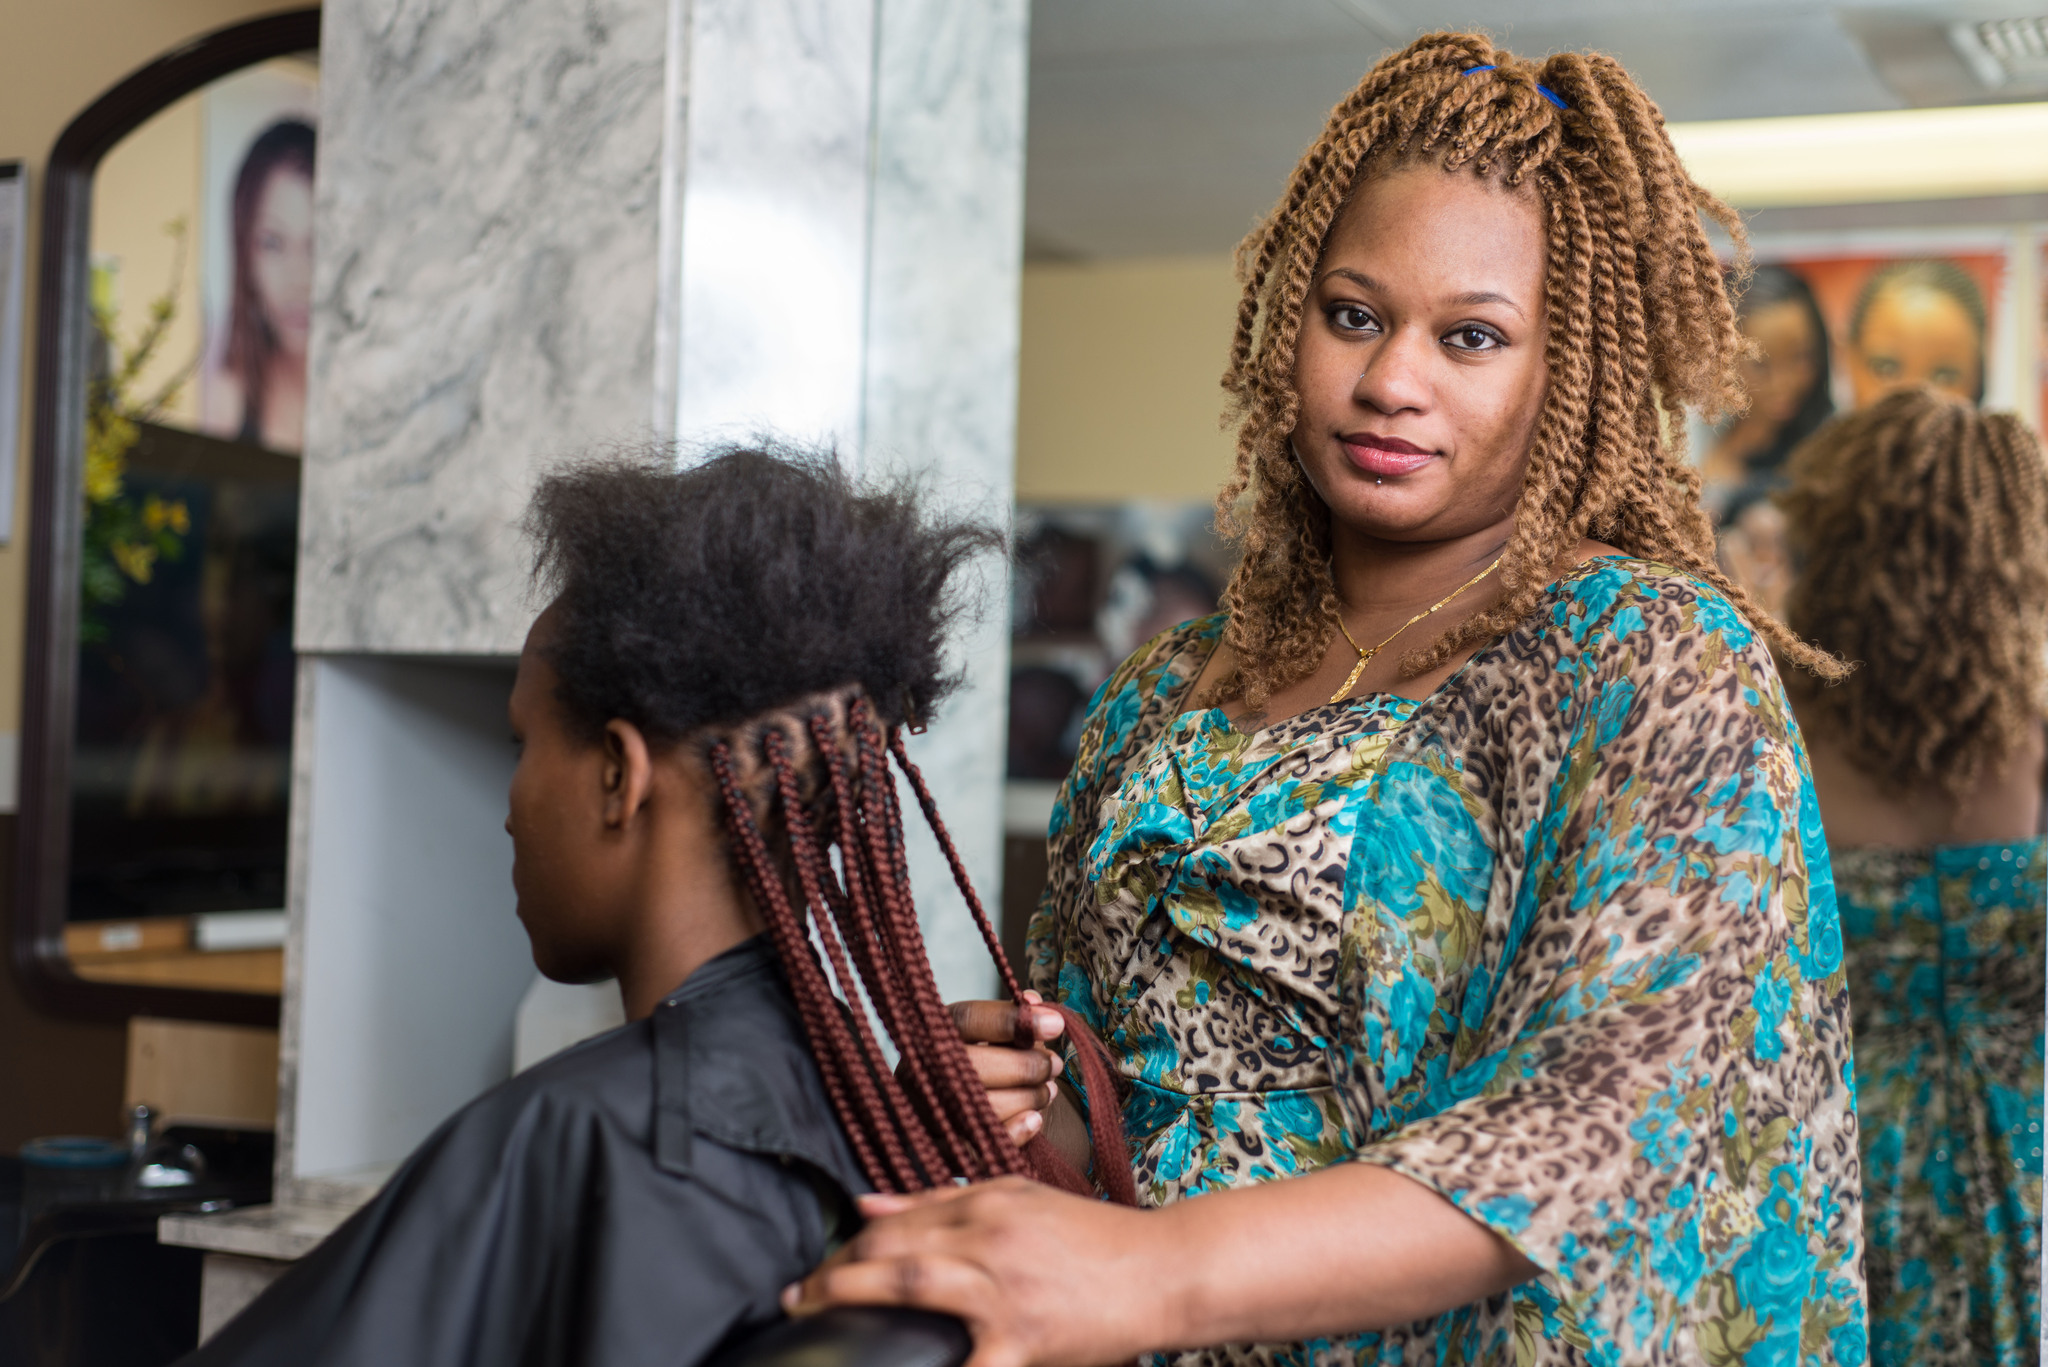 Africain Salon Washington Hair Braiding Institute For Justice